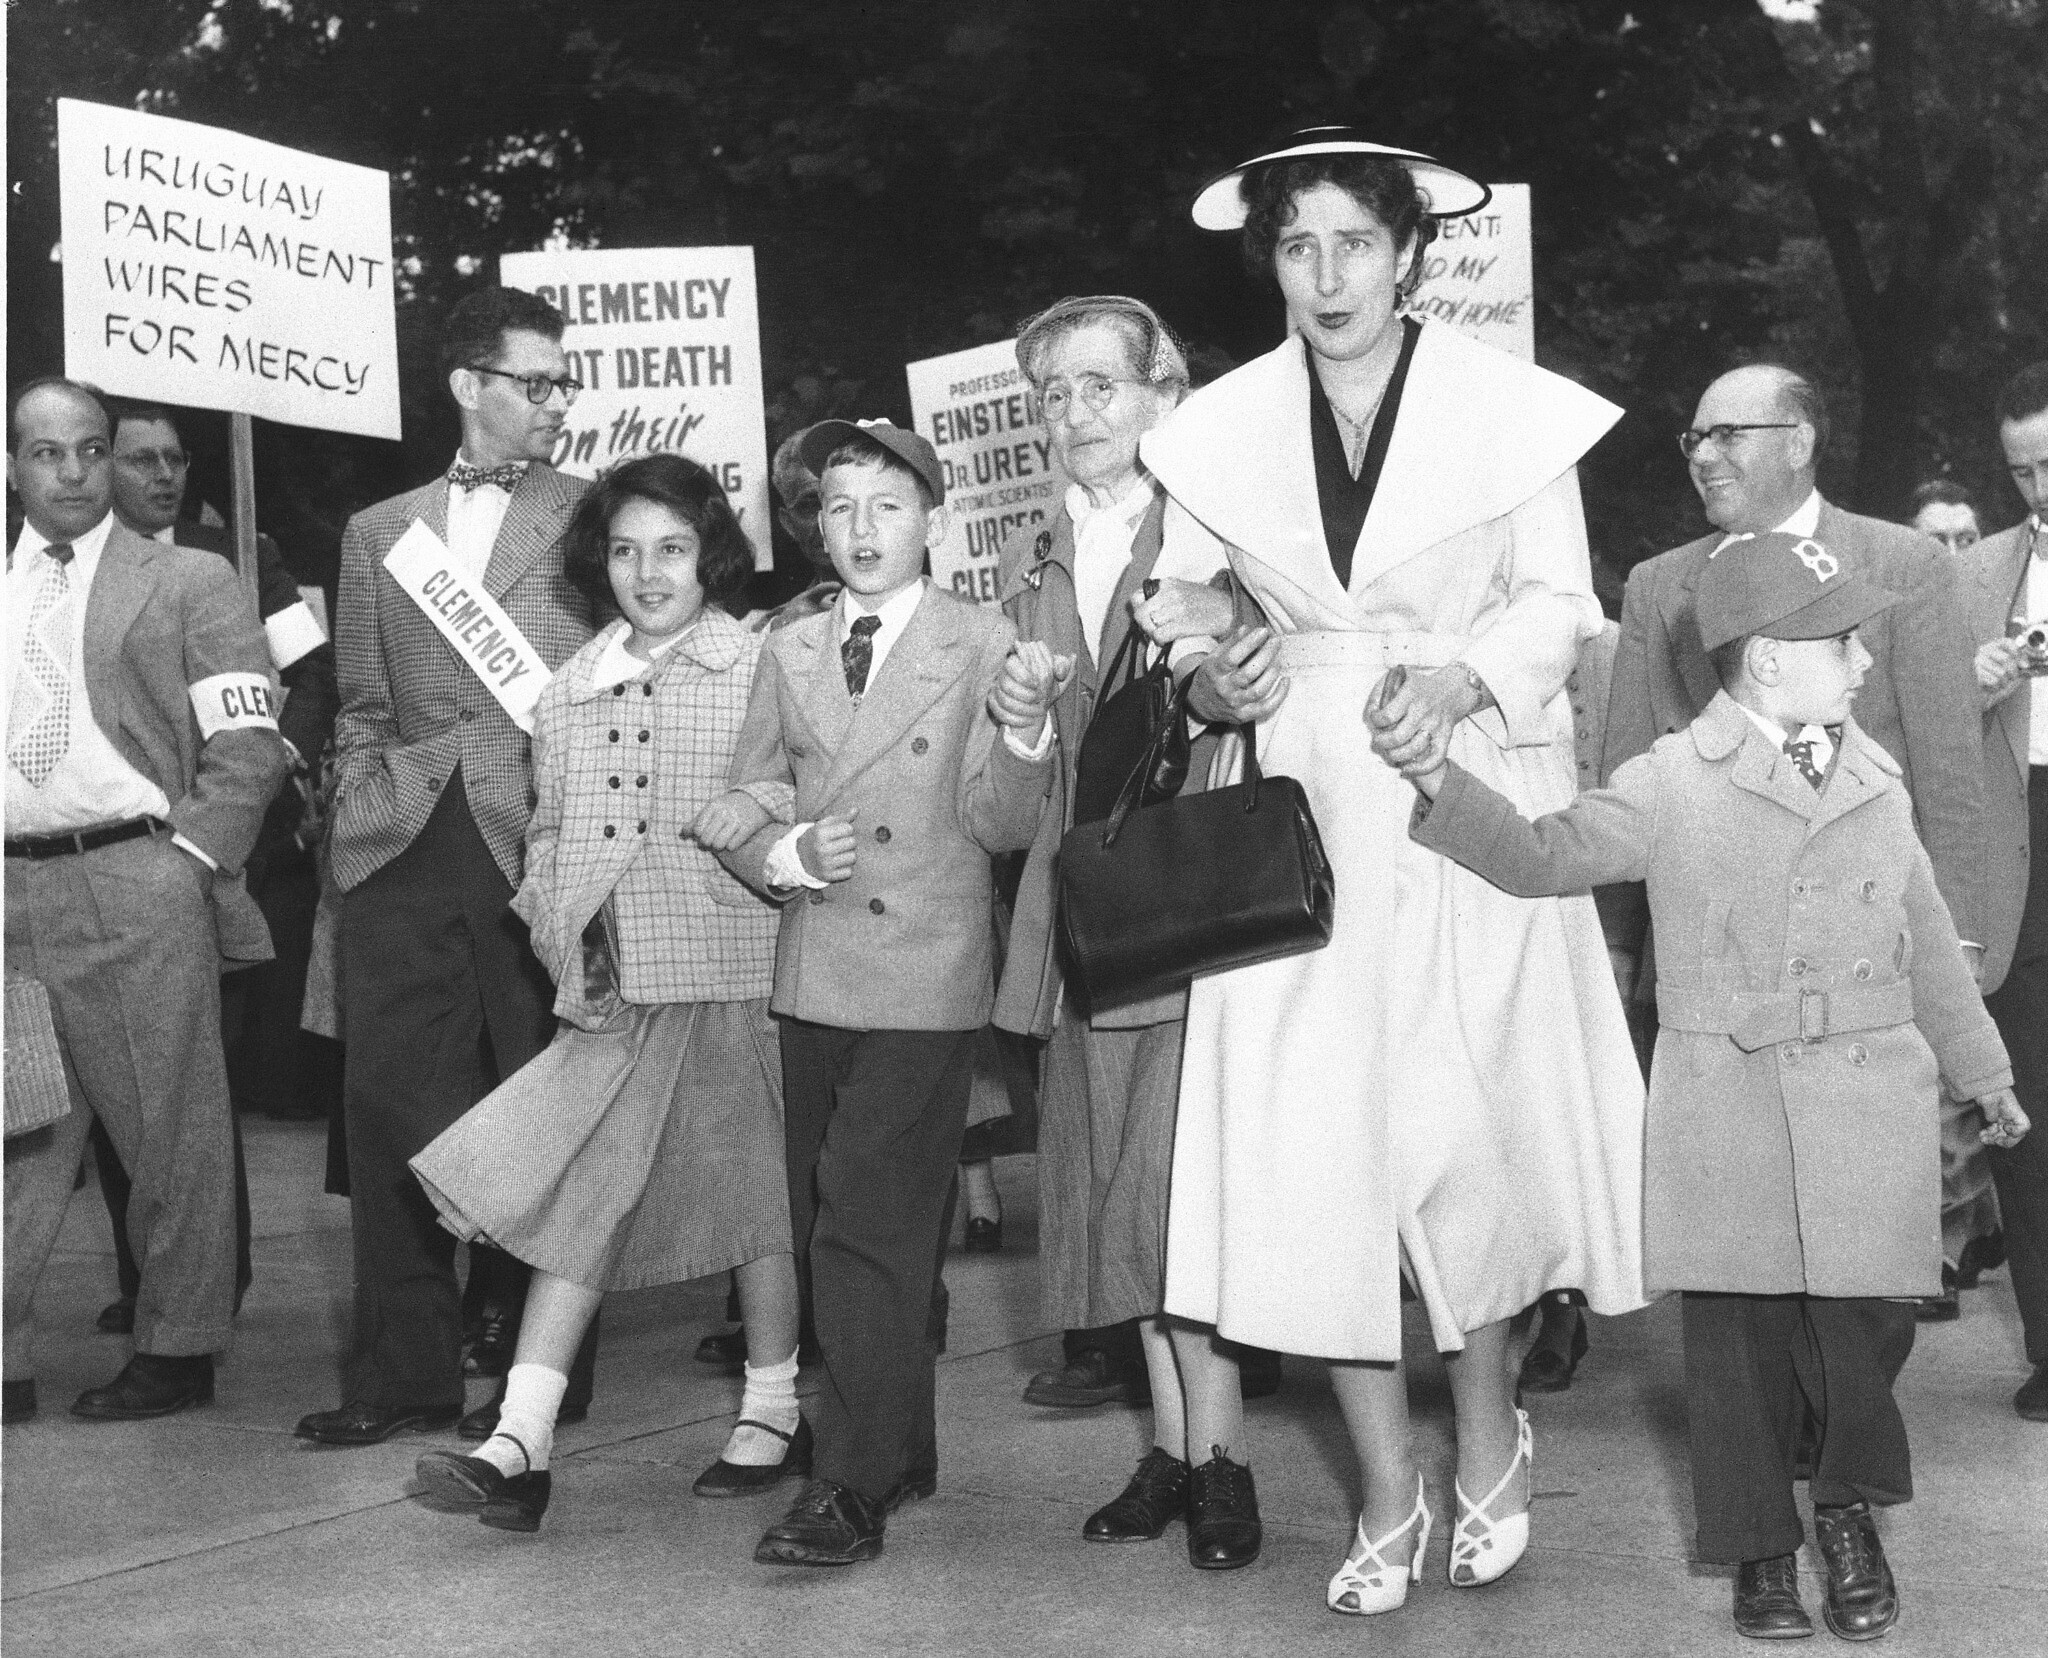 The two sons of condemned spies Julius and Ethel Rosenberg and Julius' mother join marchers in front of the White House during a demonstration by persons seeking clemency for the Rosenbergs in Washington, June 14, 1953. Michael, 10, walks between his grandmother, Sophie Rosenberg, and an unidentified girl. Robert, 6, looks away at right as his hand is held by Emily Alman, a leader of the demonstration. Others are unidentified. (AP Photo/Bob Schutz)